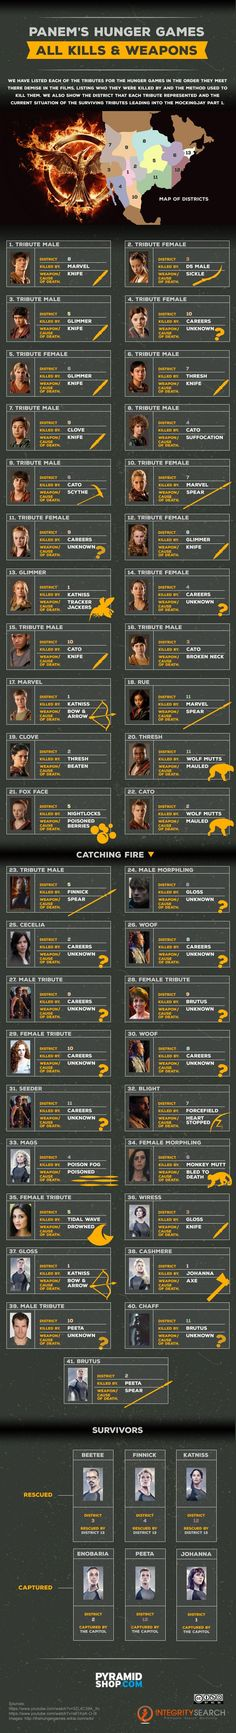 This is from the Hunger Games, Catching Fire, and the survivors that will be in Mockingjay part 1 and 2